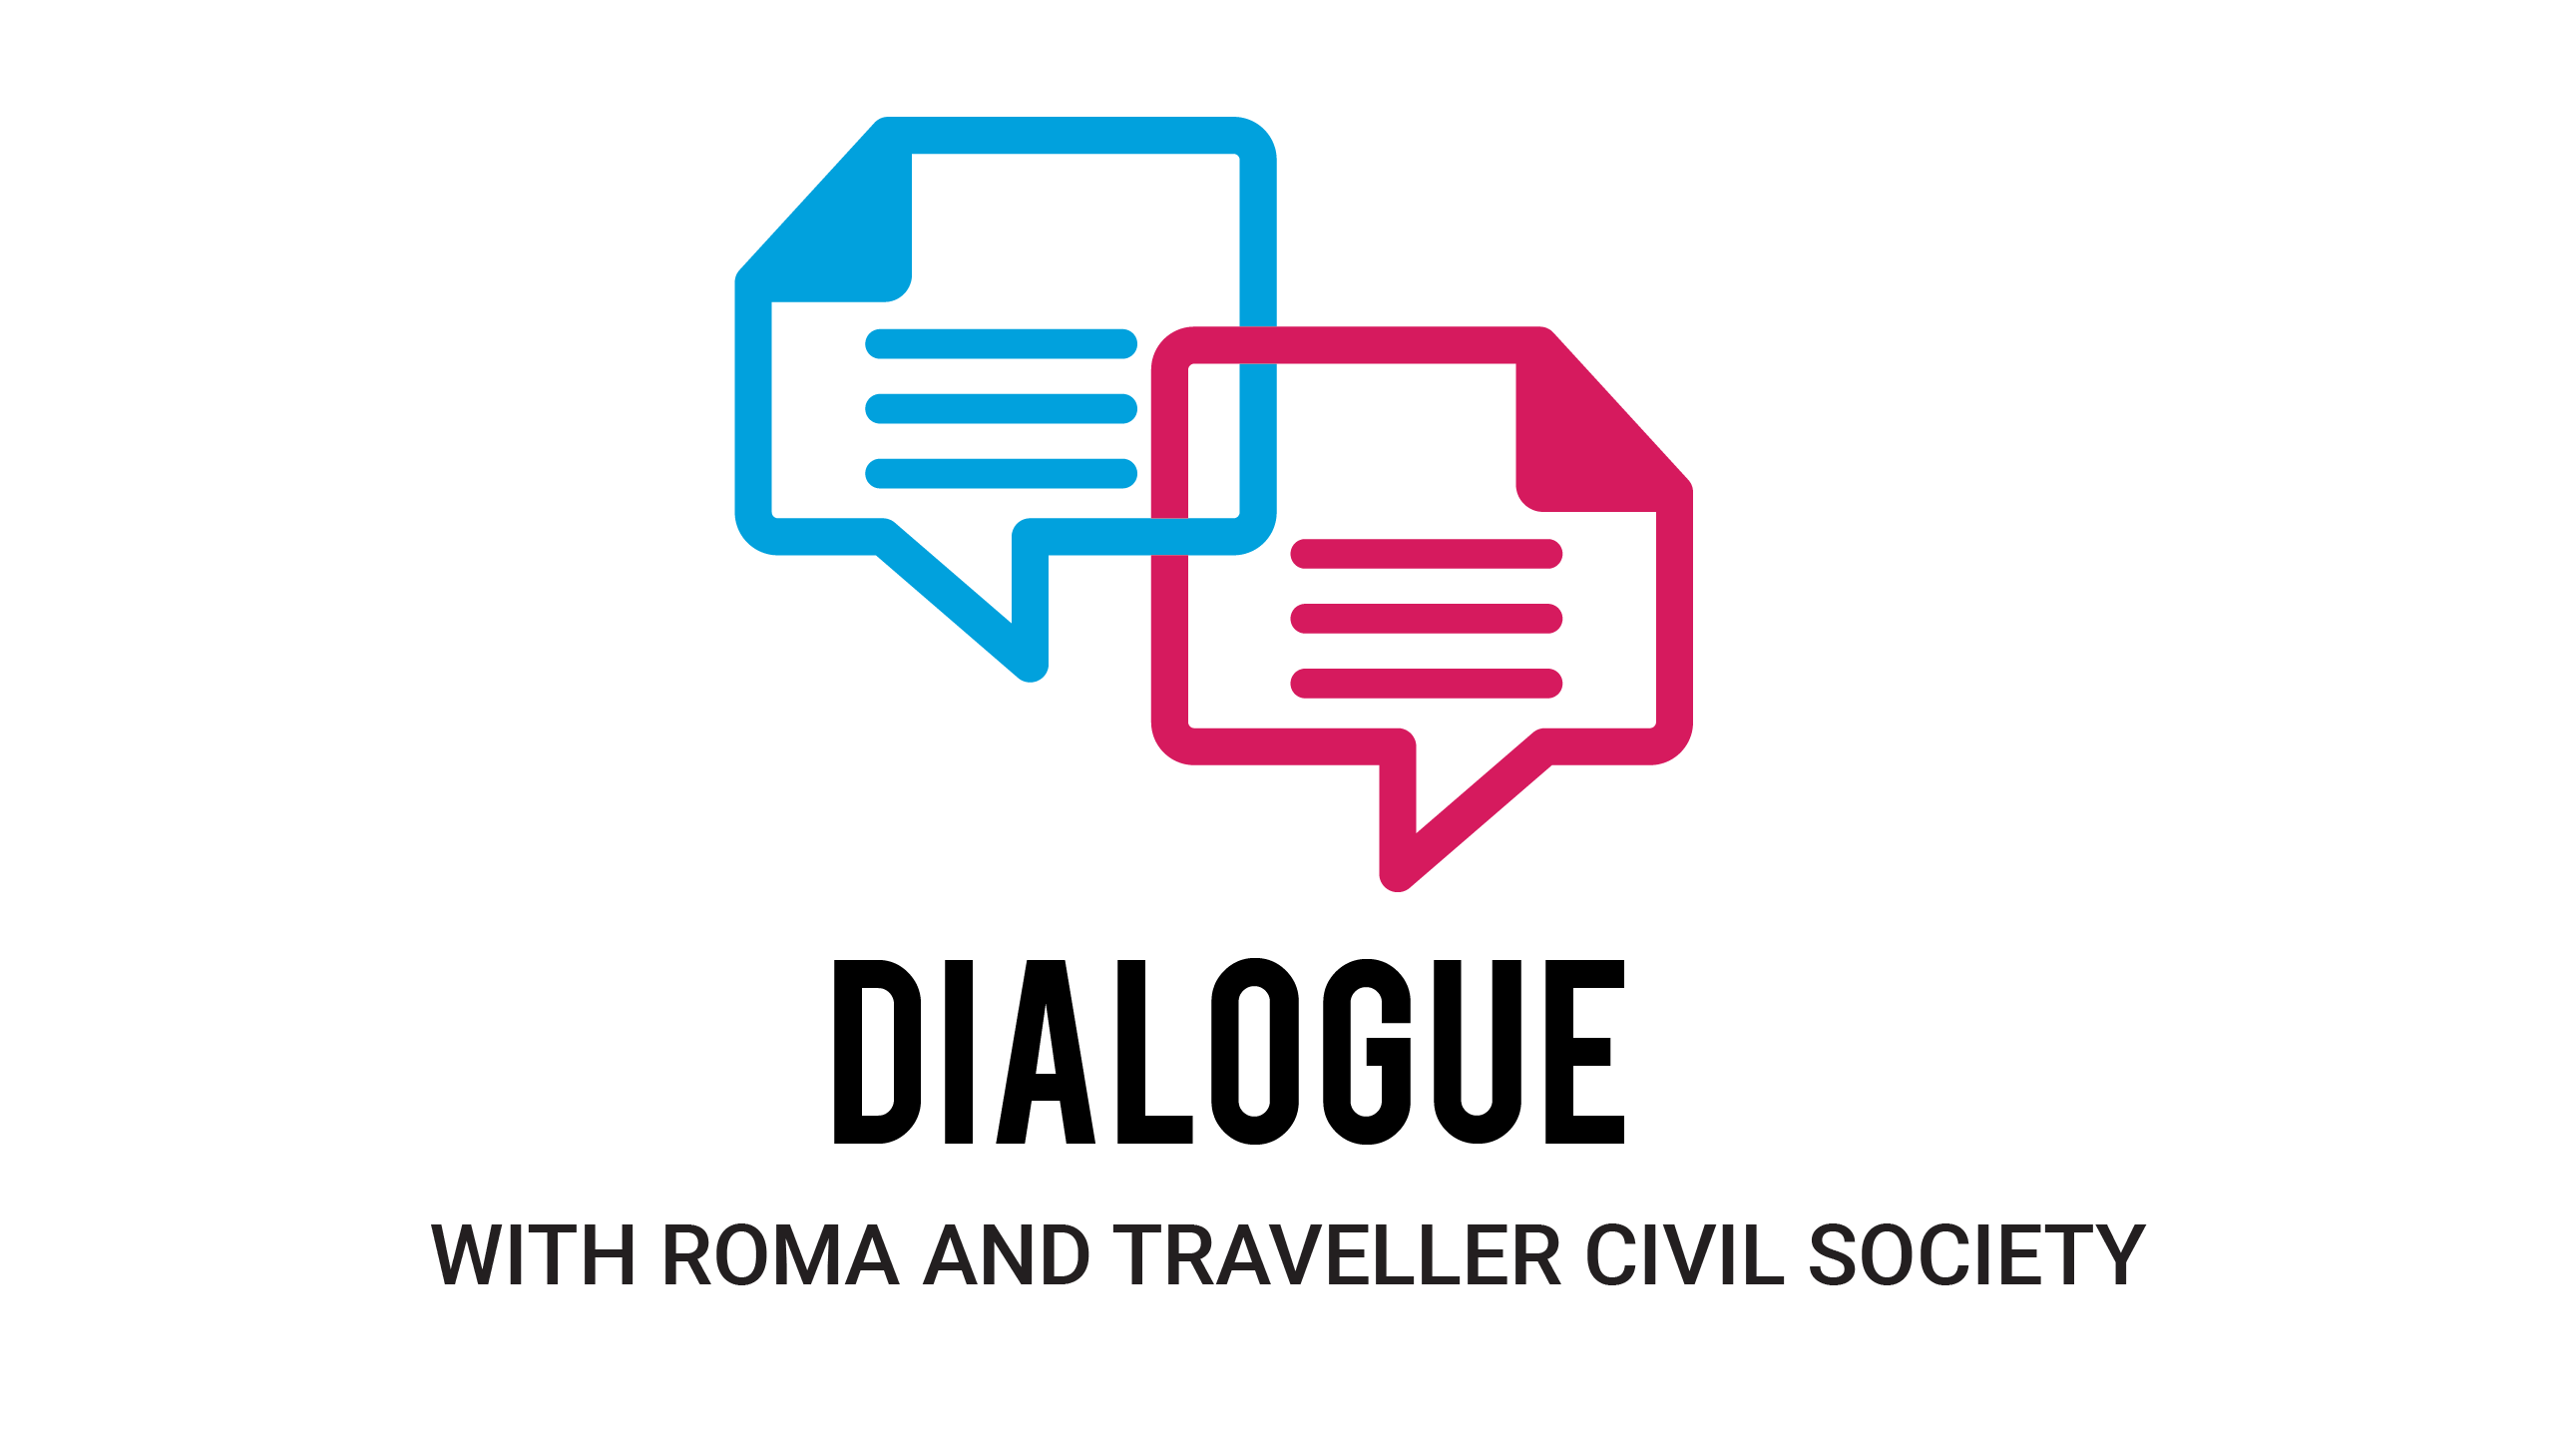 5th Council of Europe Dialogue with Roma and Traveller civil society